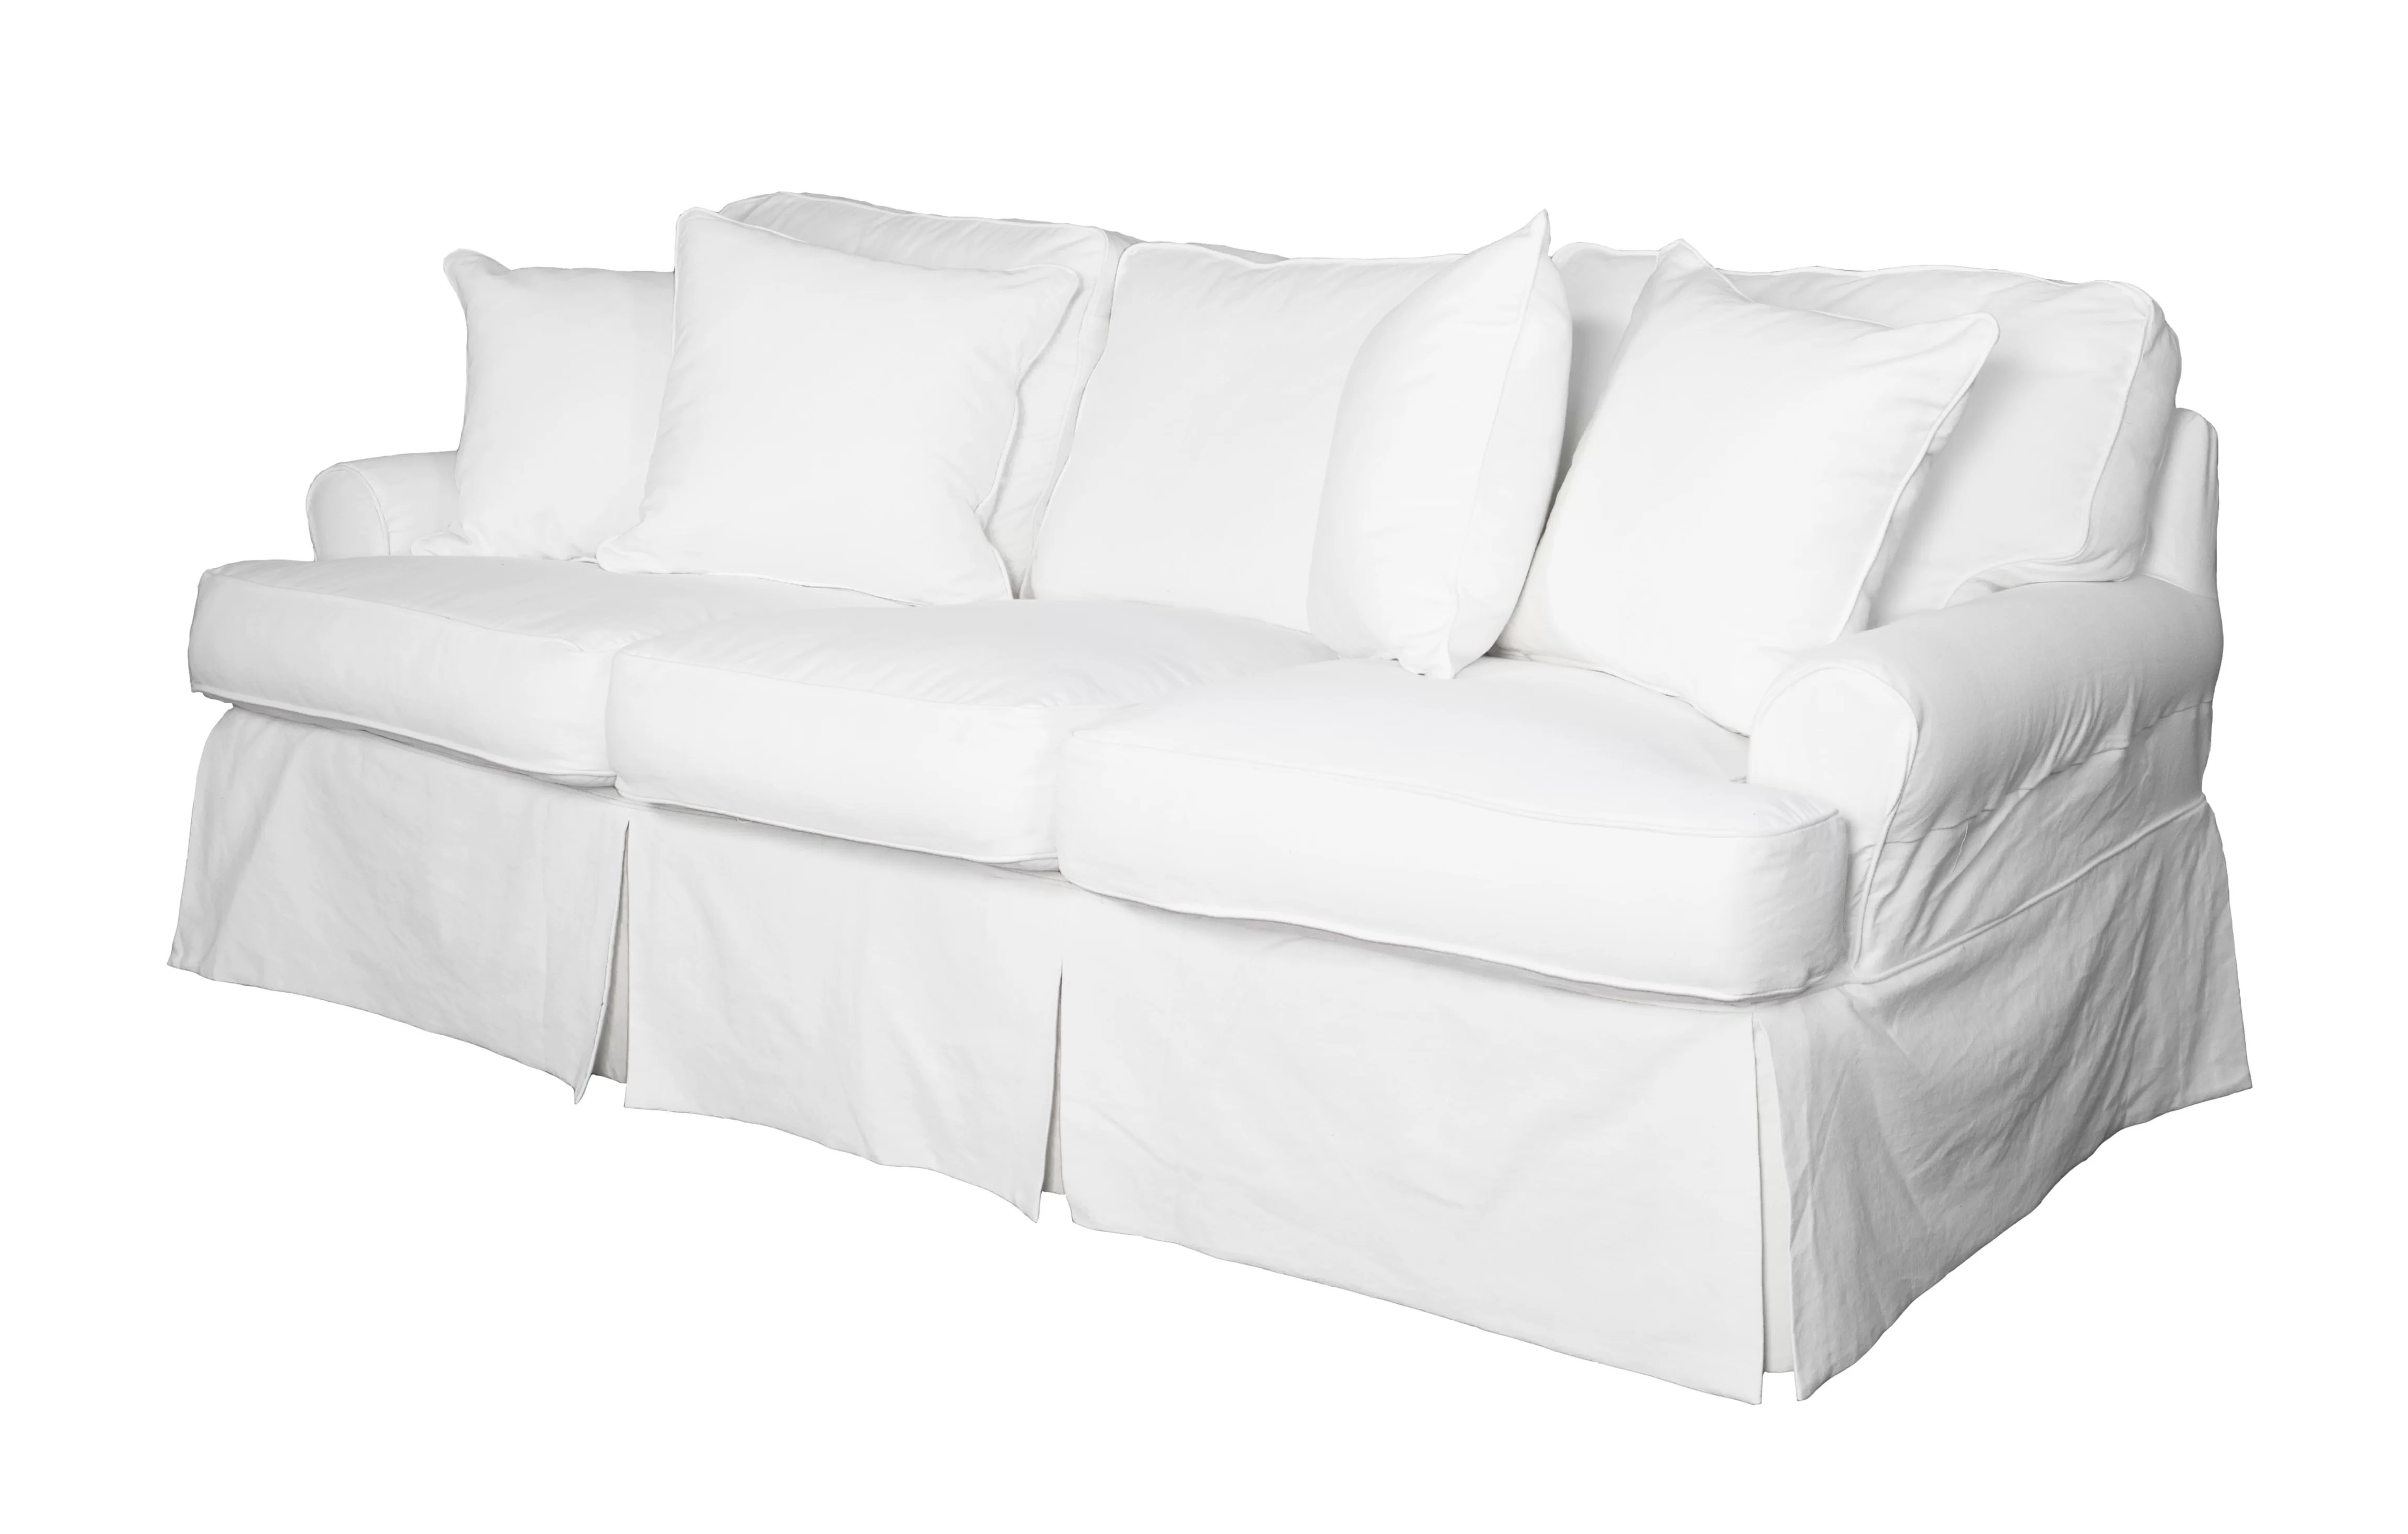 slipcover for sofa cushions separate loveseat set cheap t cushion slipcovers sure fit stretch faux leather